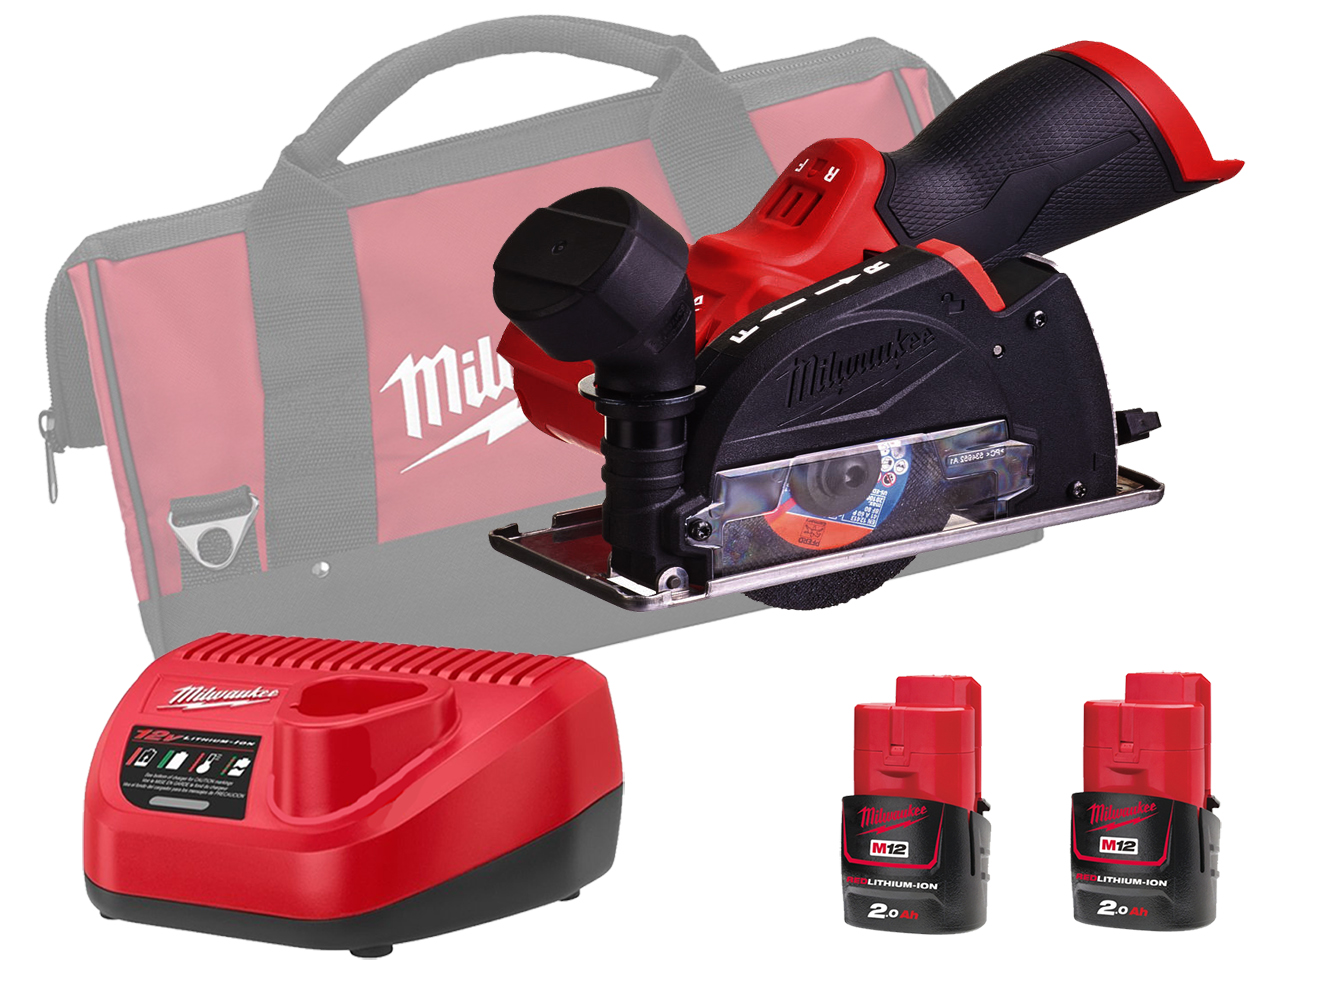 Milwaukee M12FCOT 12V Fuel Sub Compact Multi-Material Cut-Off Tool - 2.0Ah Pack